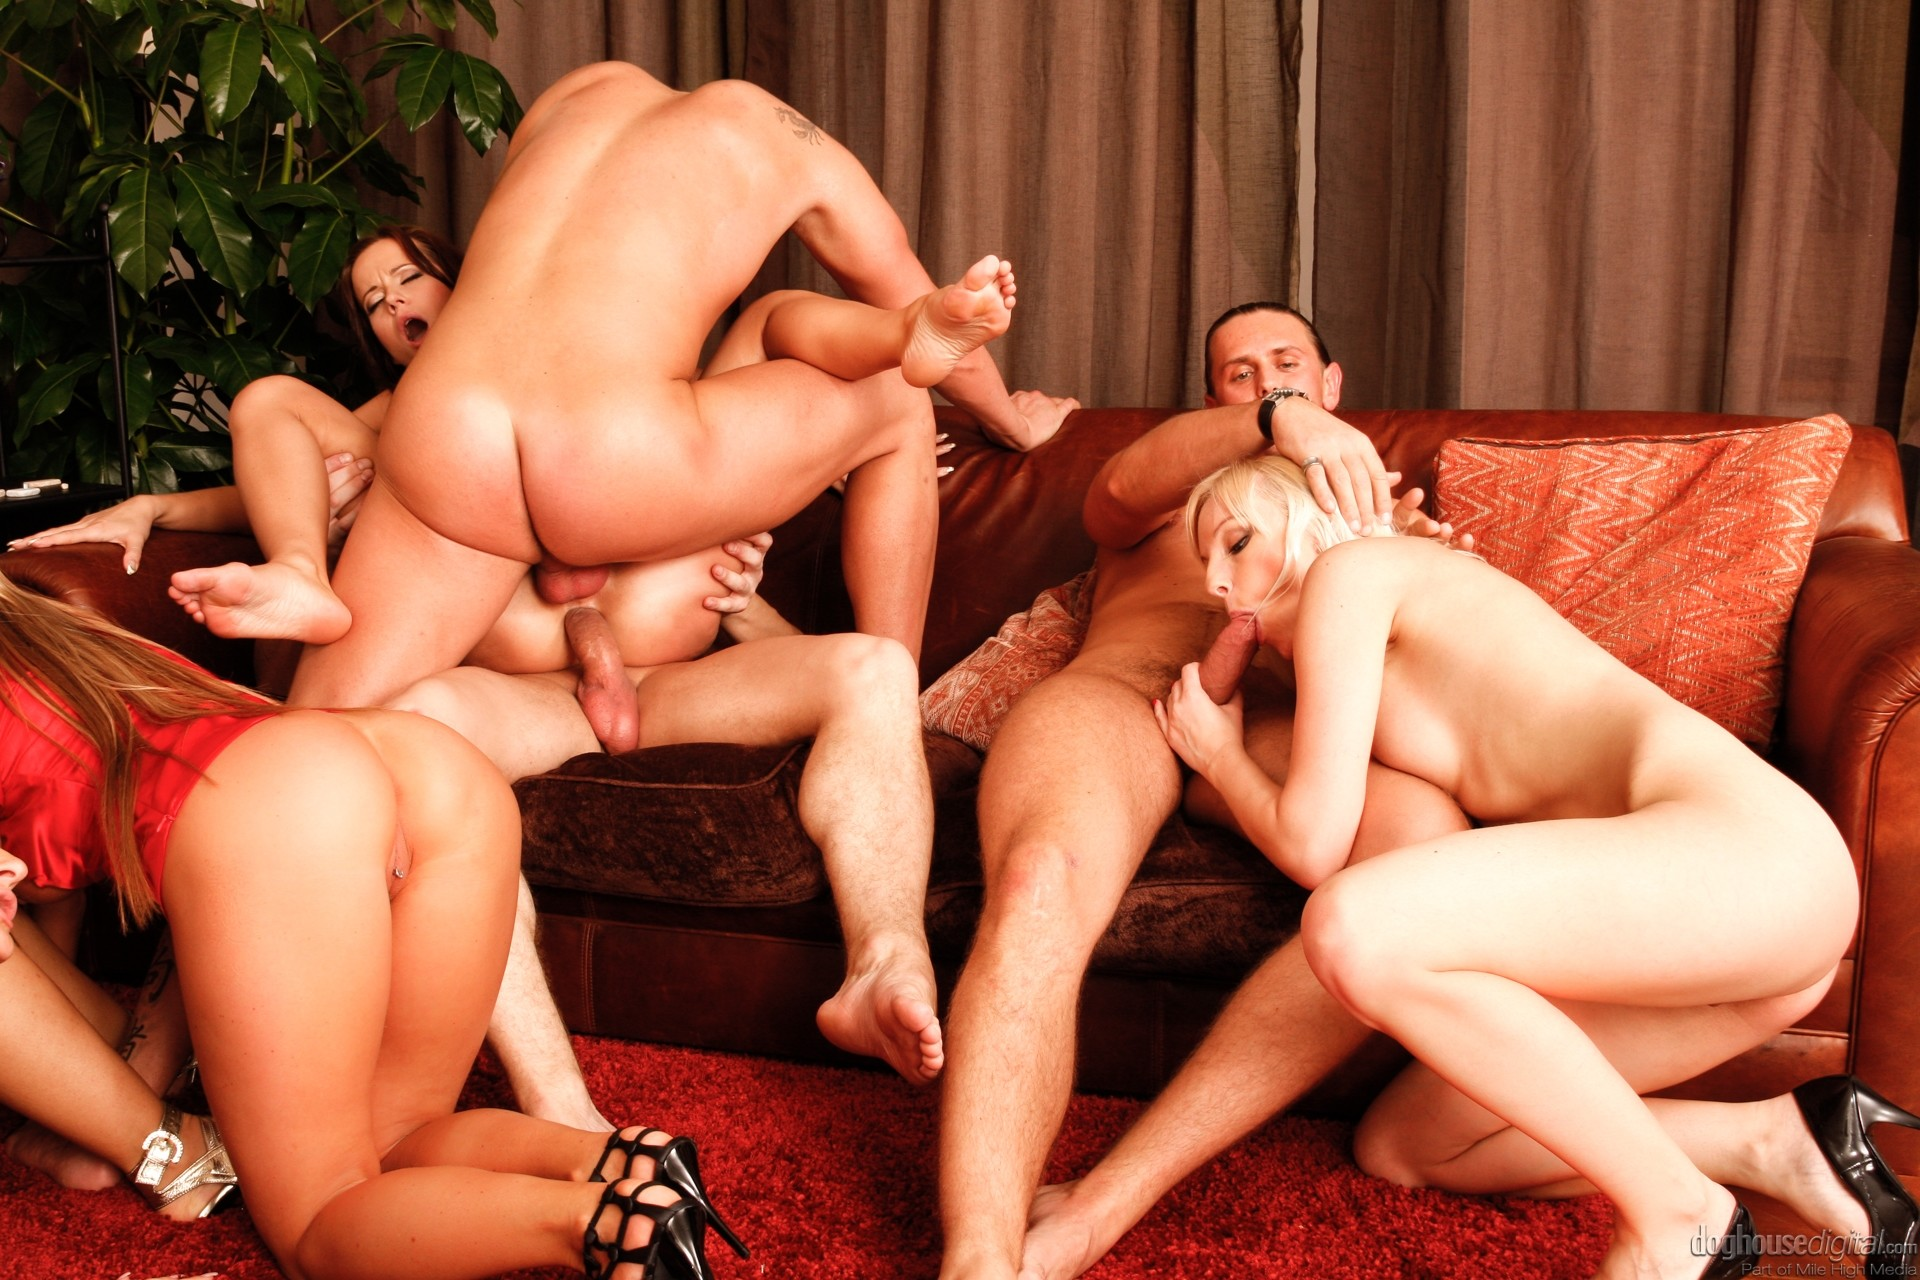 Free group orgy sex photo